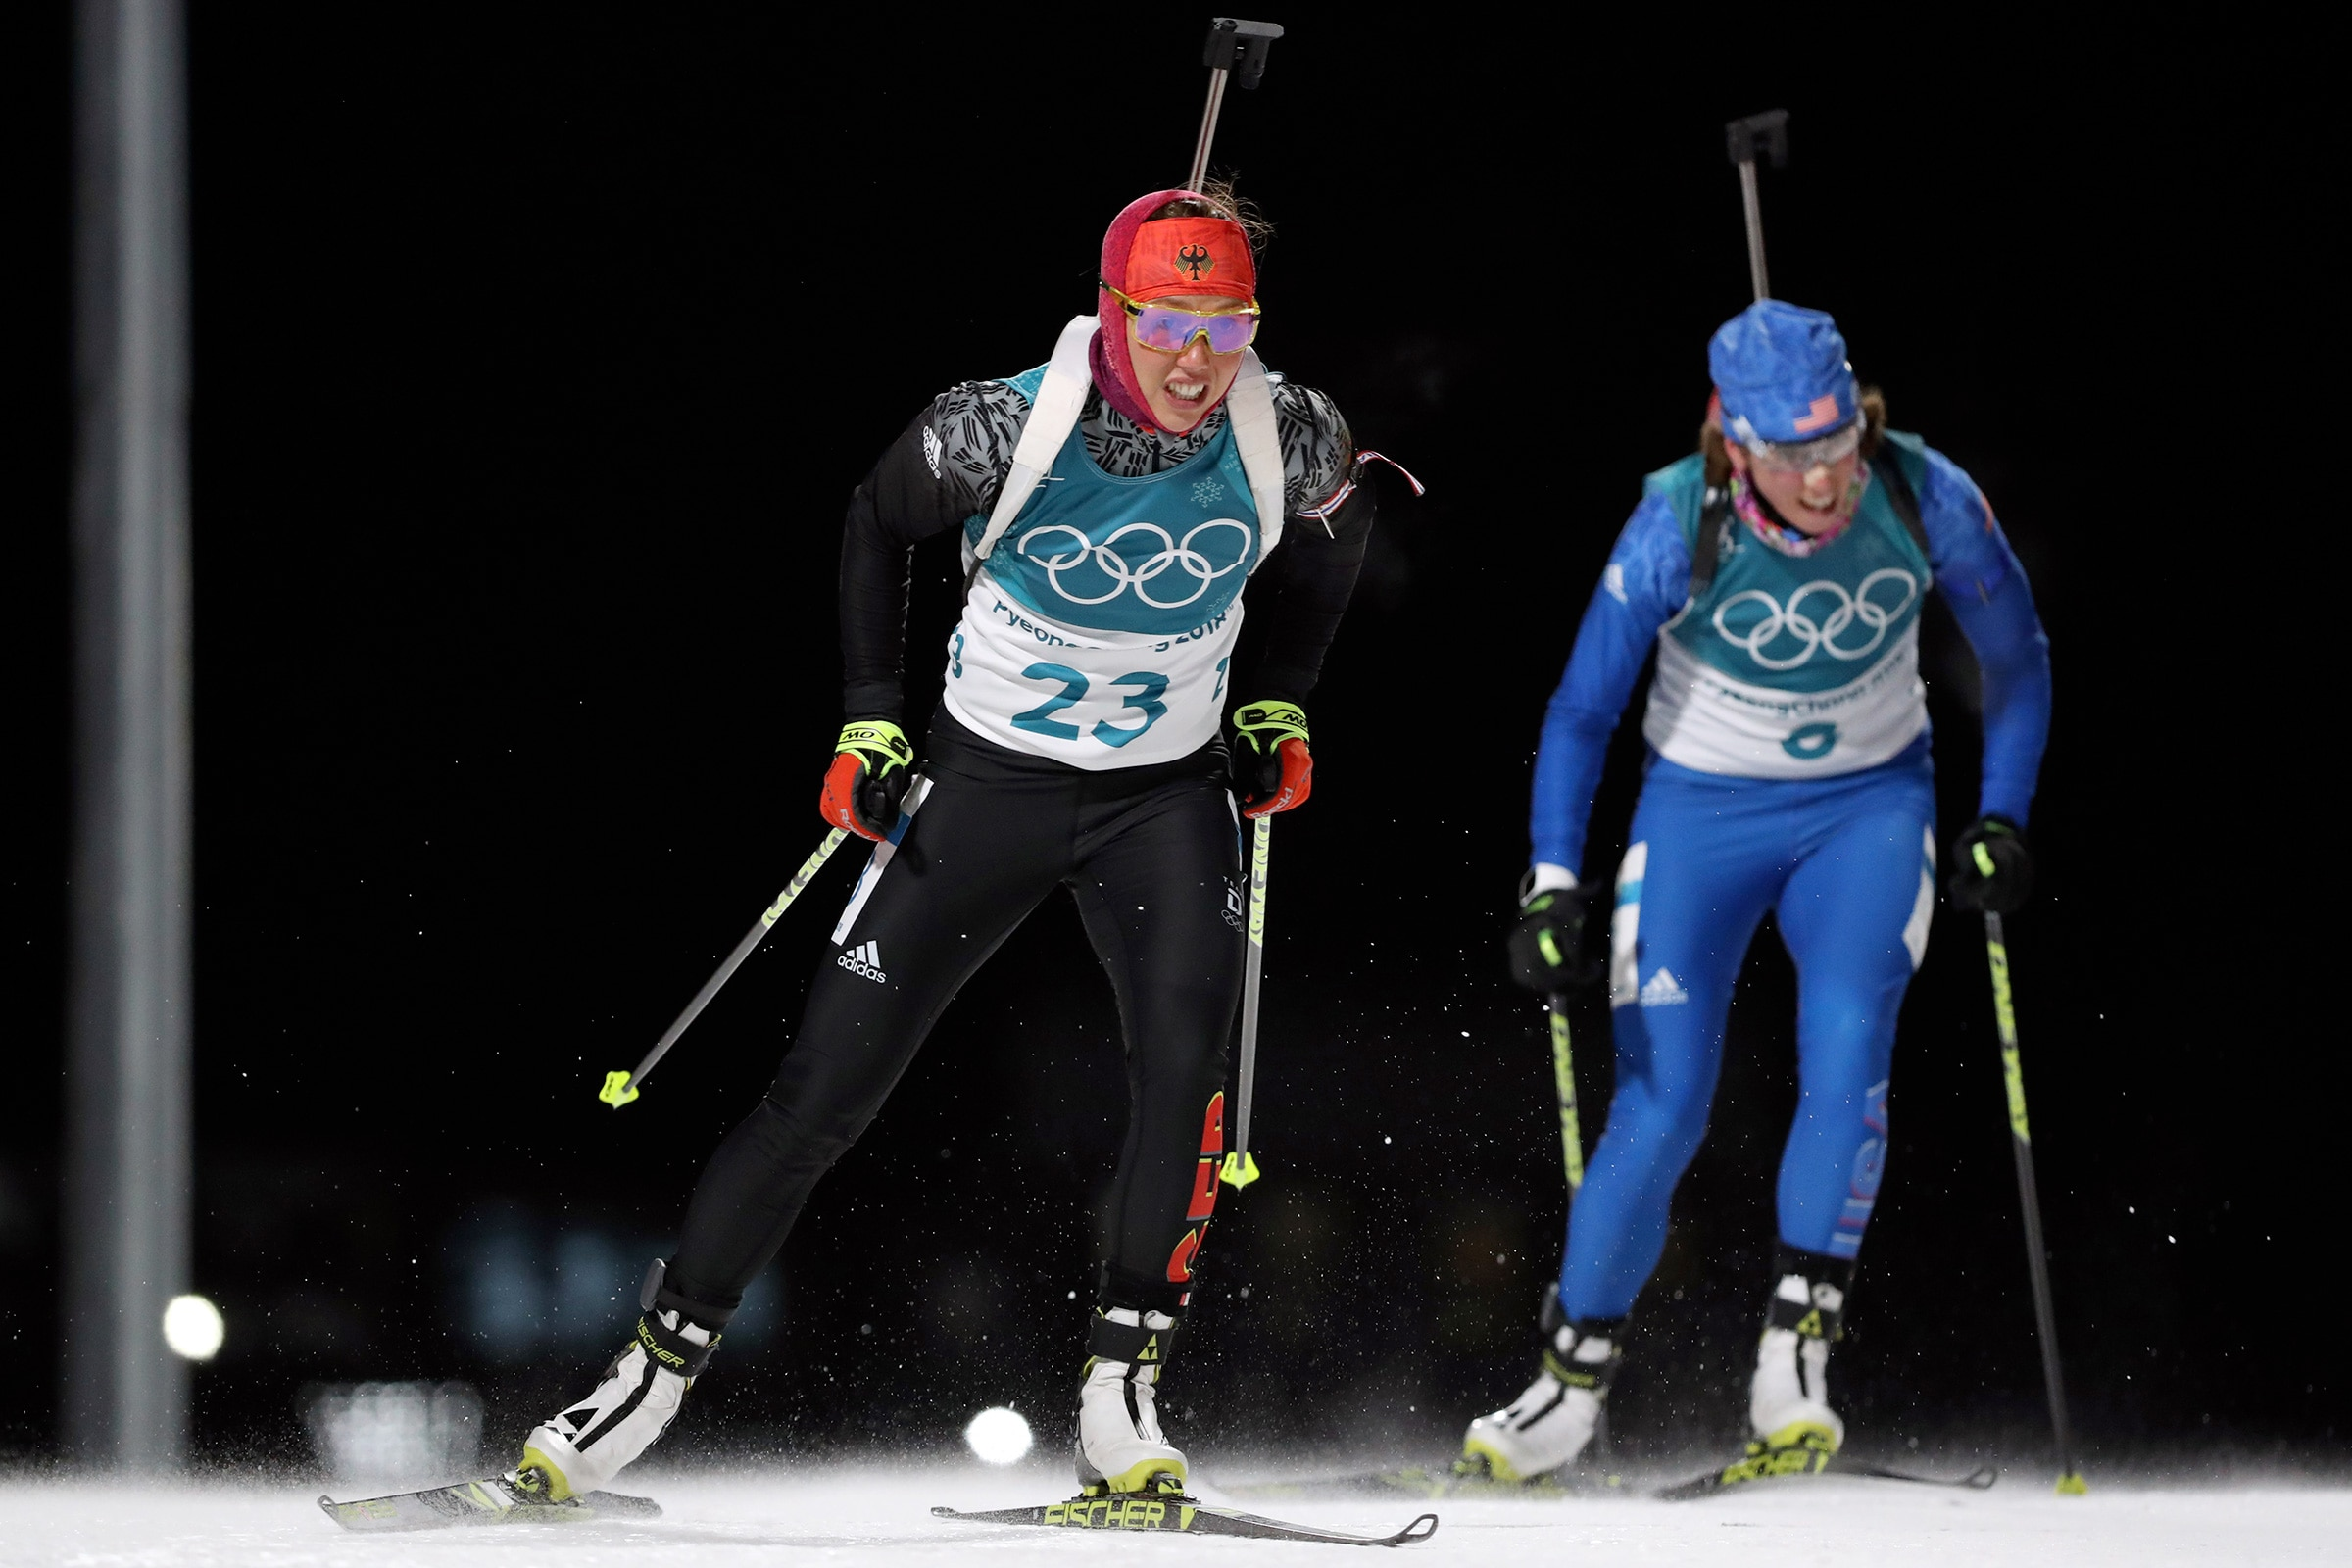 Biathlon - Women's 7.5km Sprint